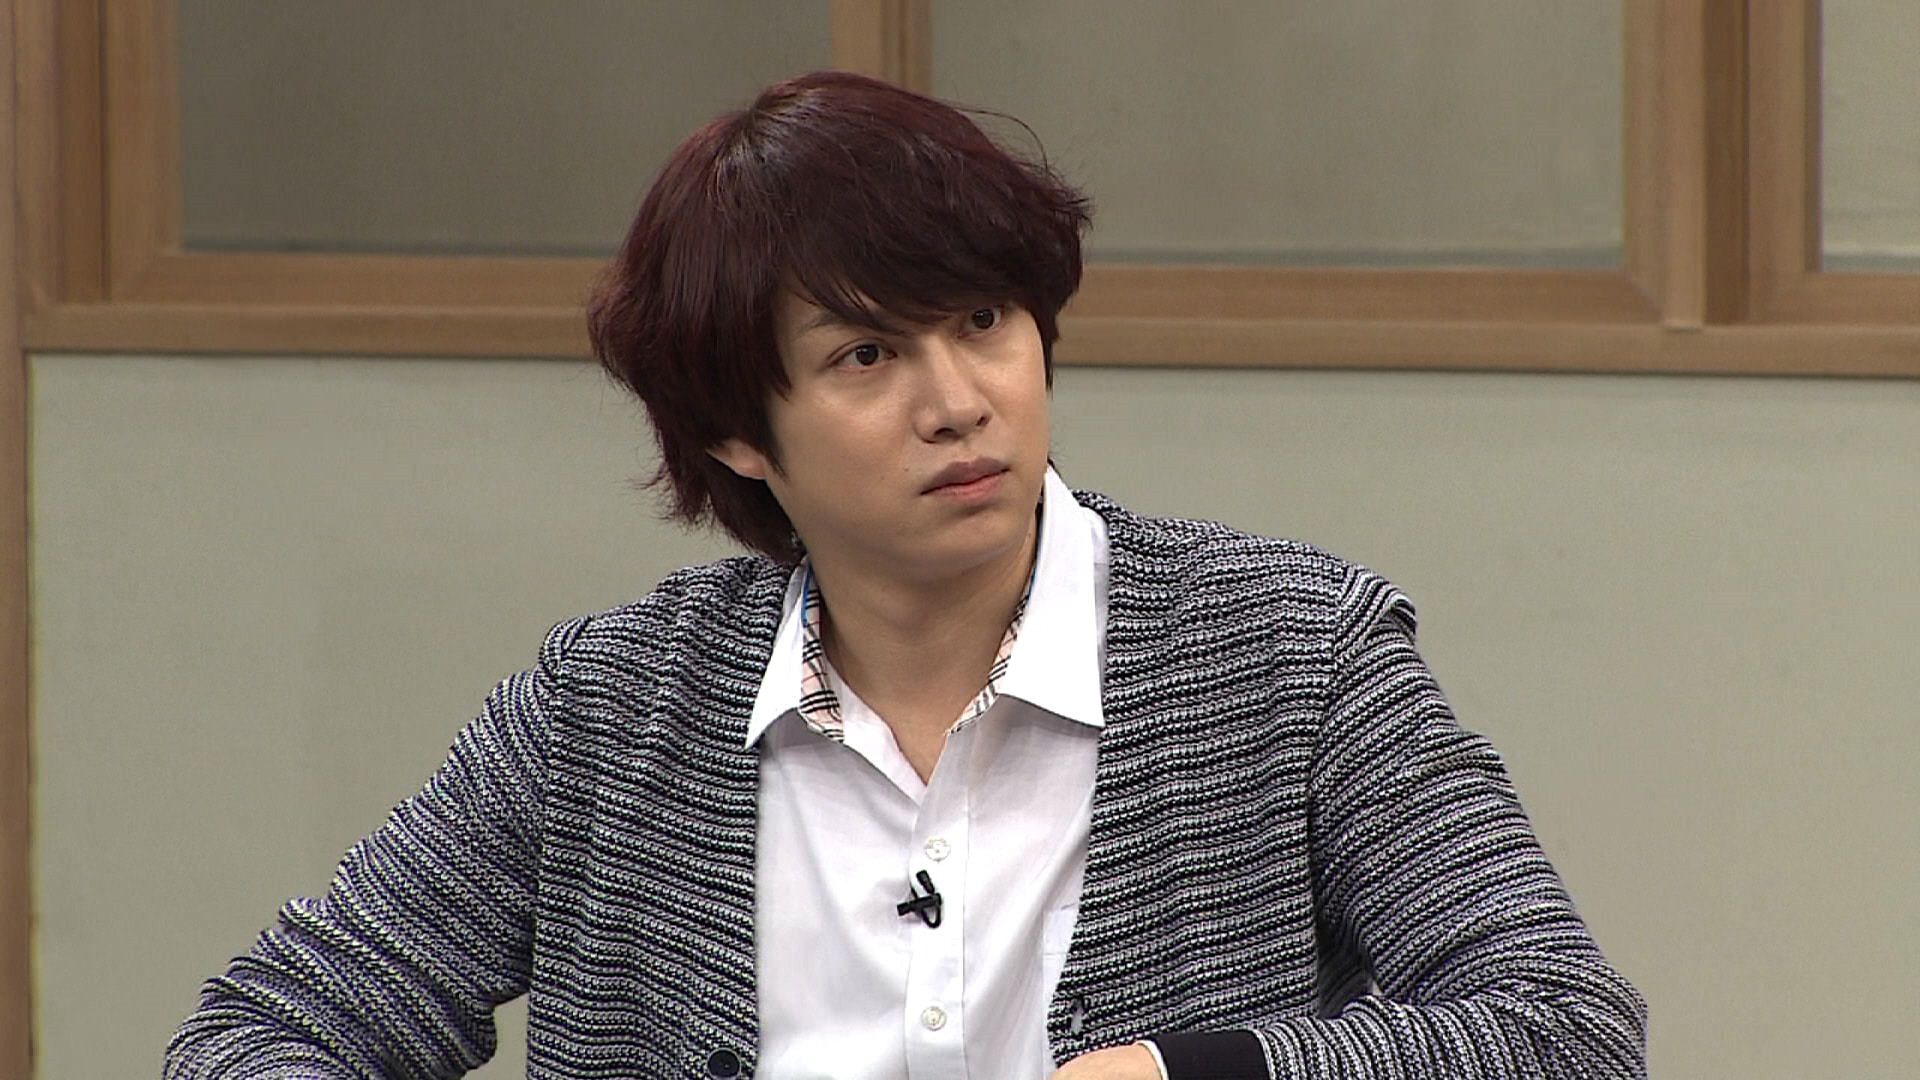 Super Junior Kim Hee-chul, Attended the Police Station on July 24 to Qualify as a Accuser of the Malicious Commenter